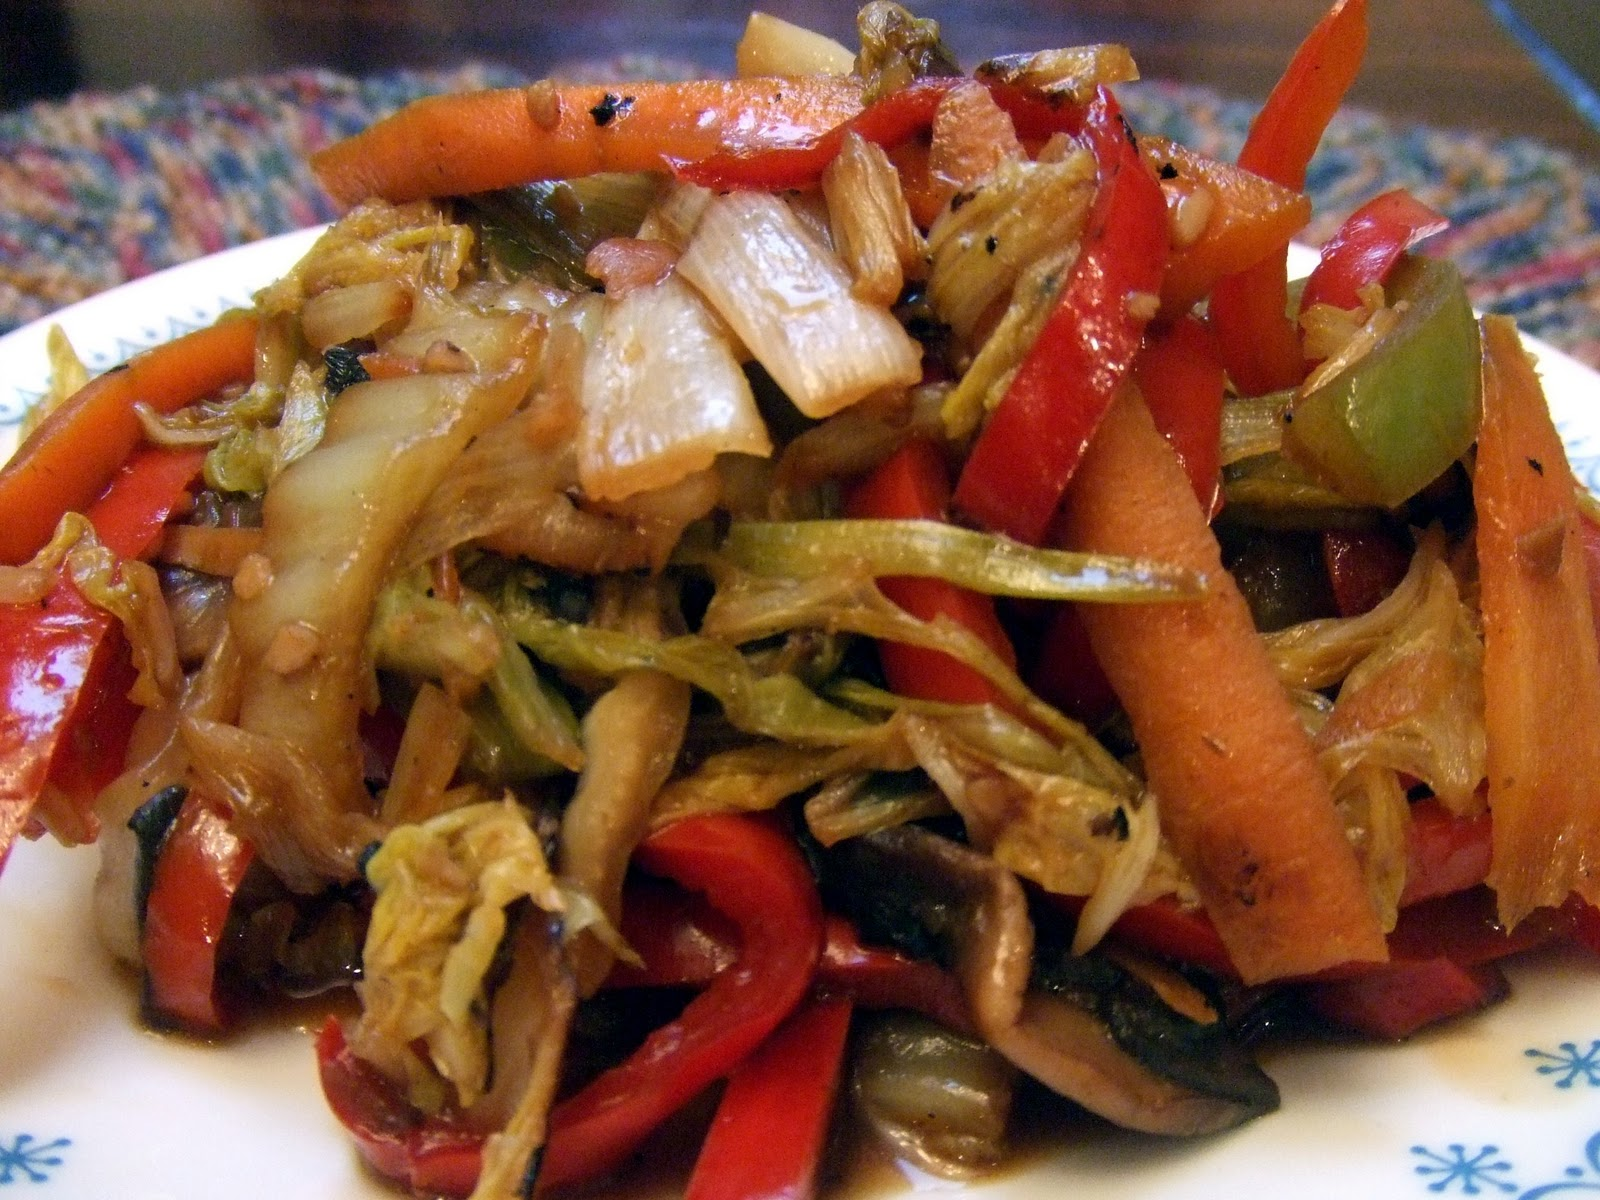 Moo shu vegetables